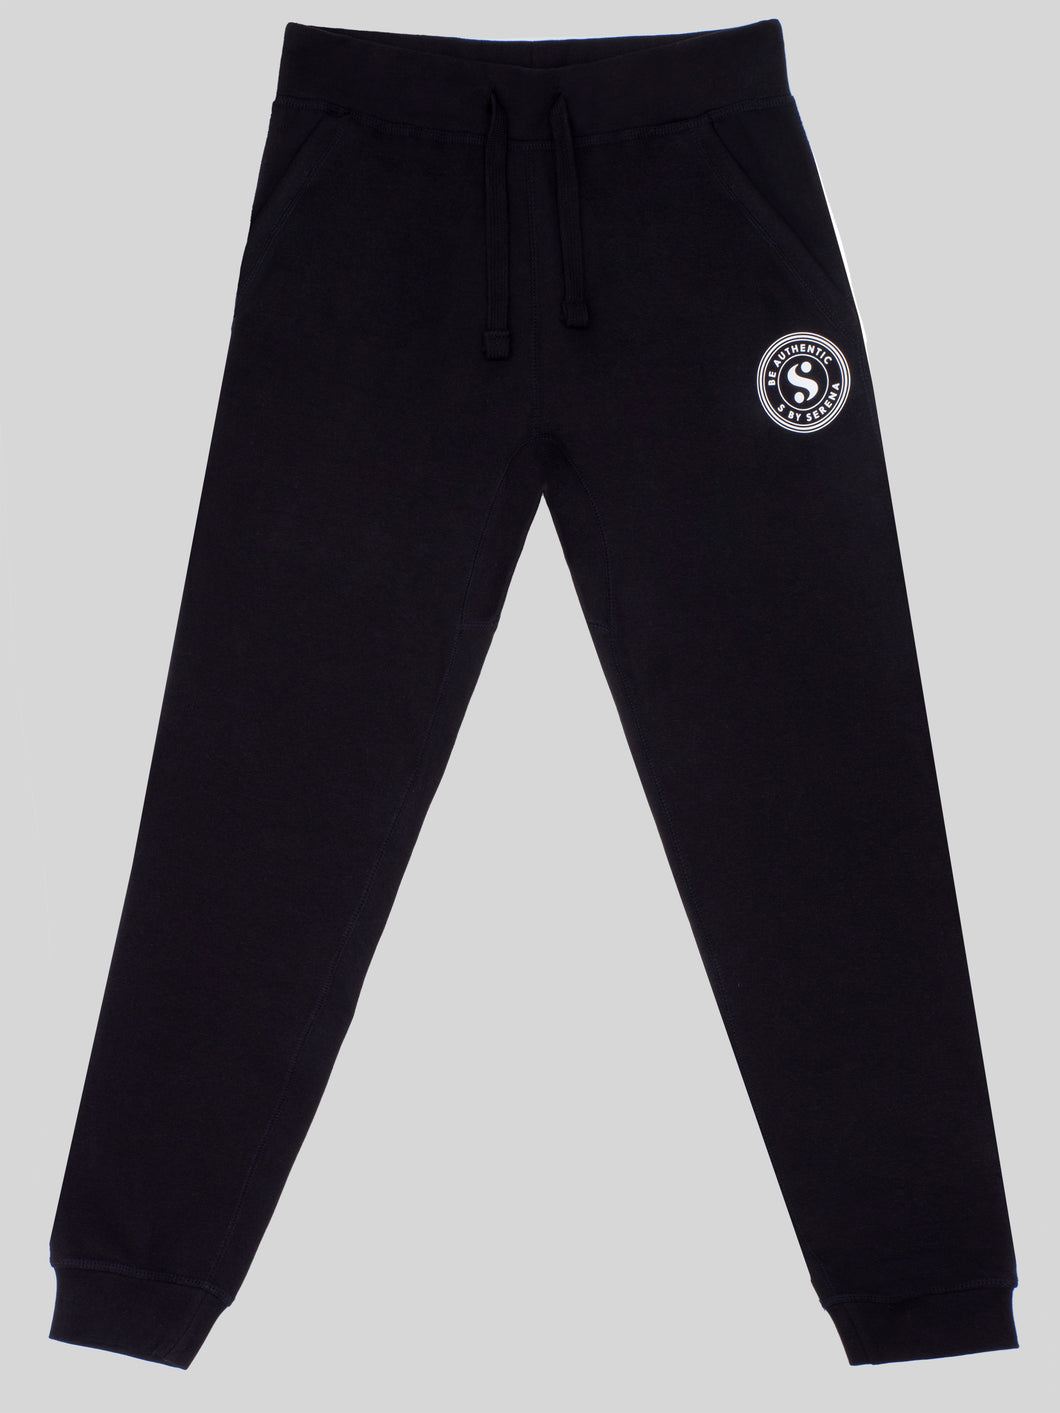 Be Authentic Unisex Lounge Pant in Black